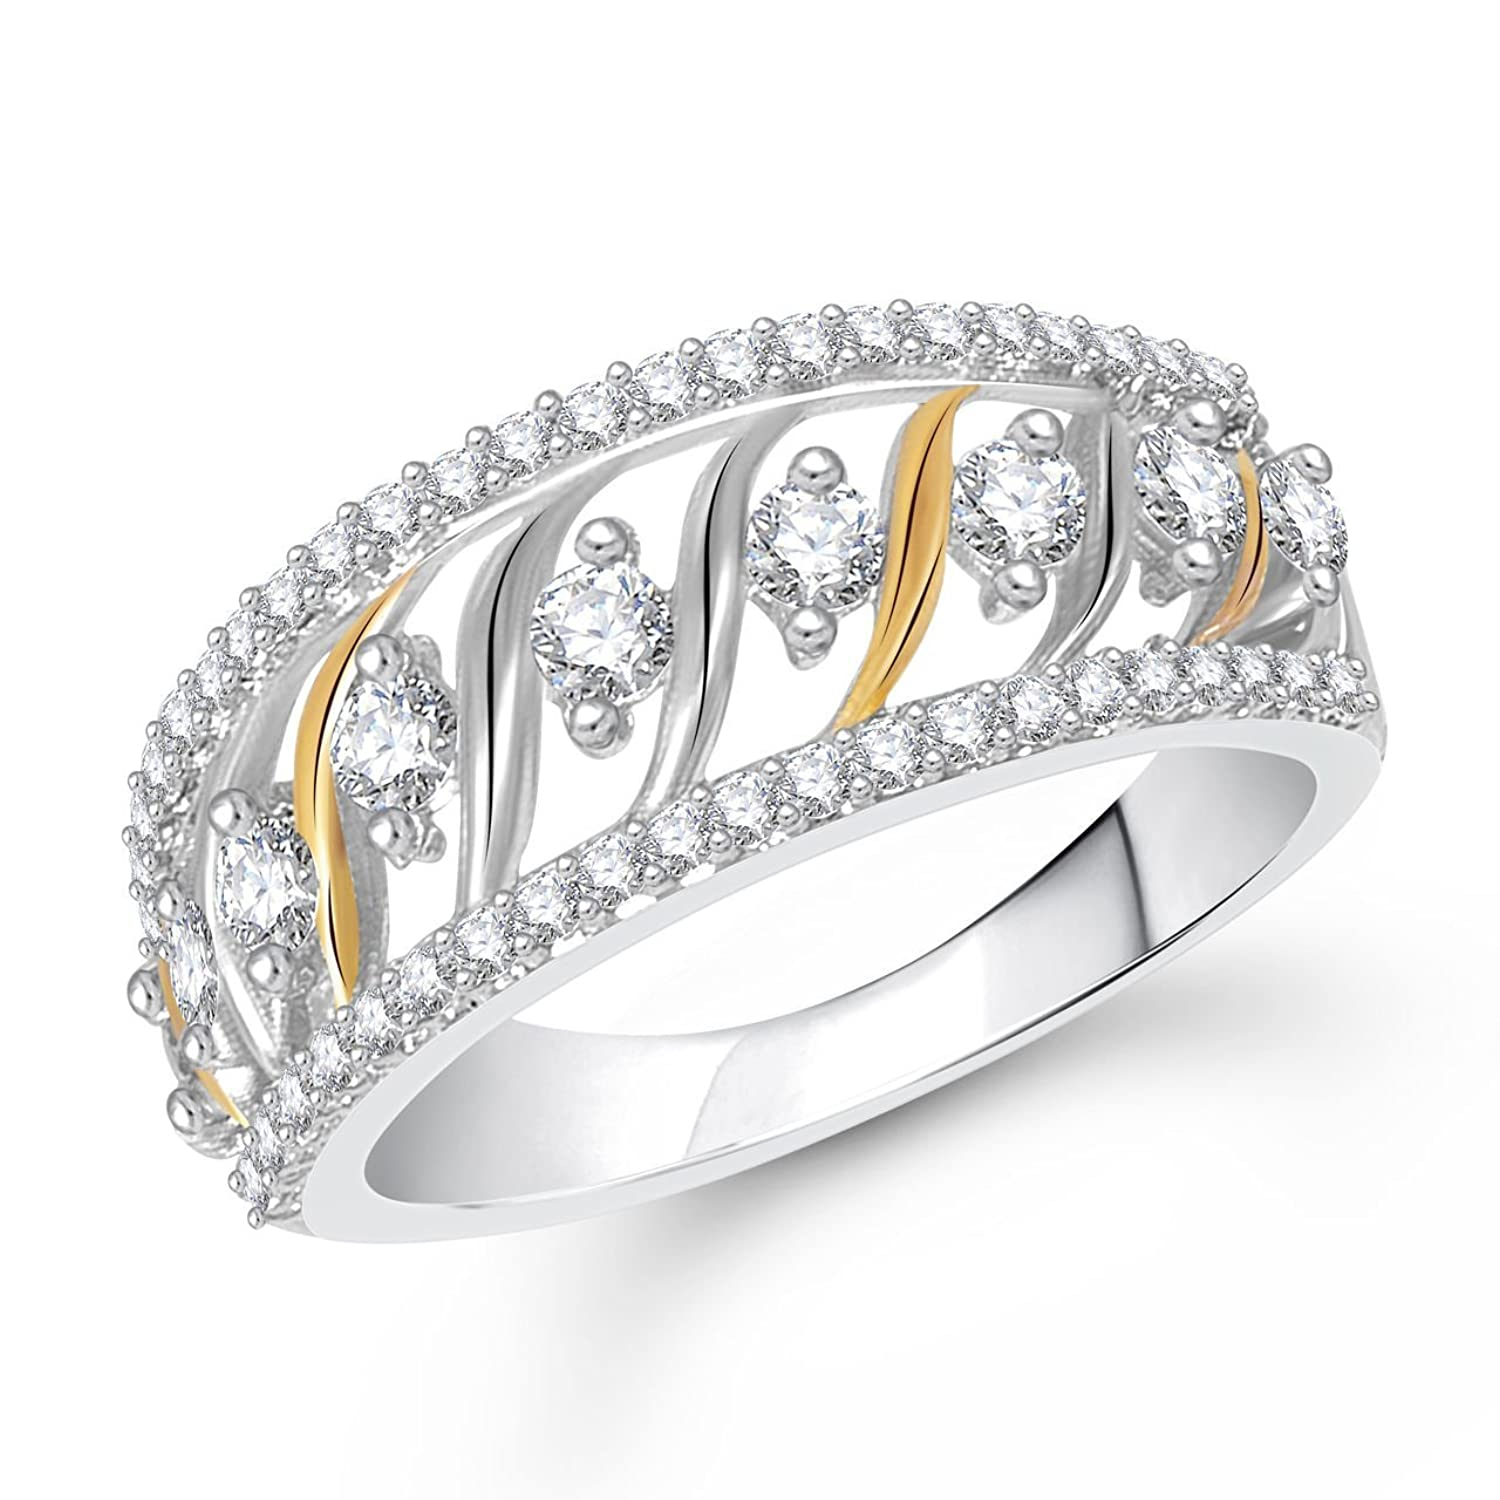 pinterest ring designs pin rings beautiful gold jewellery